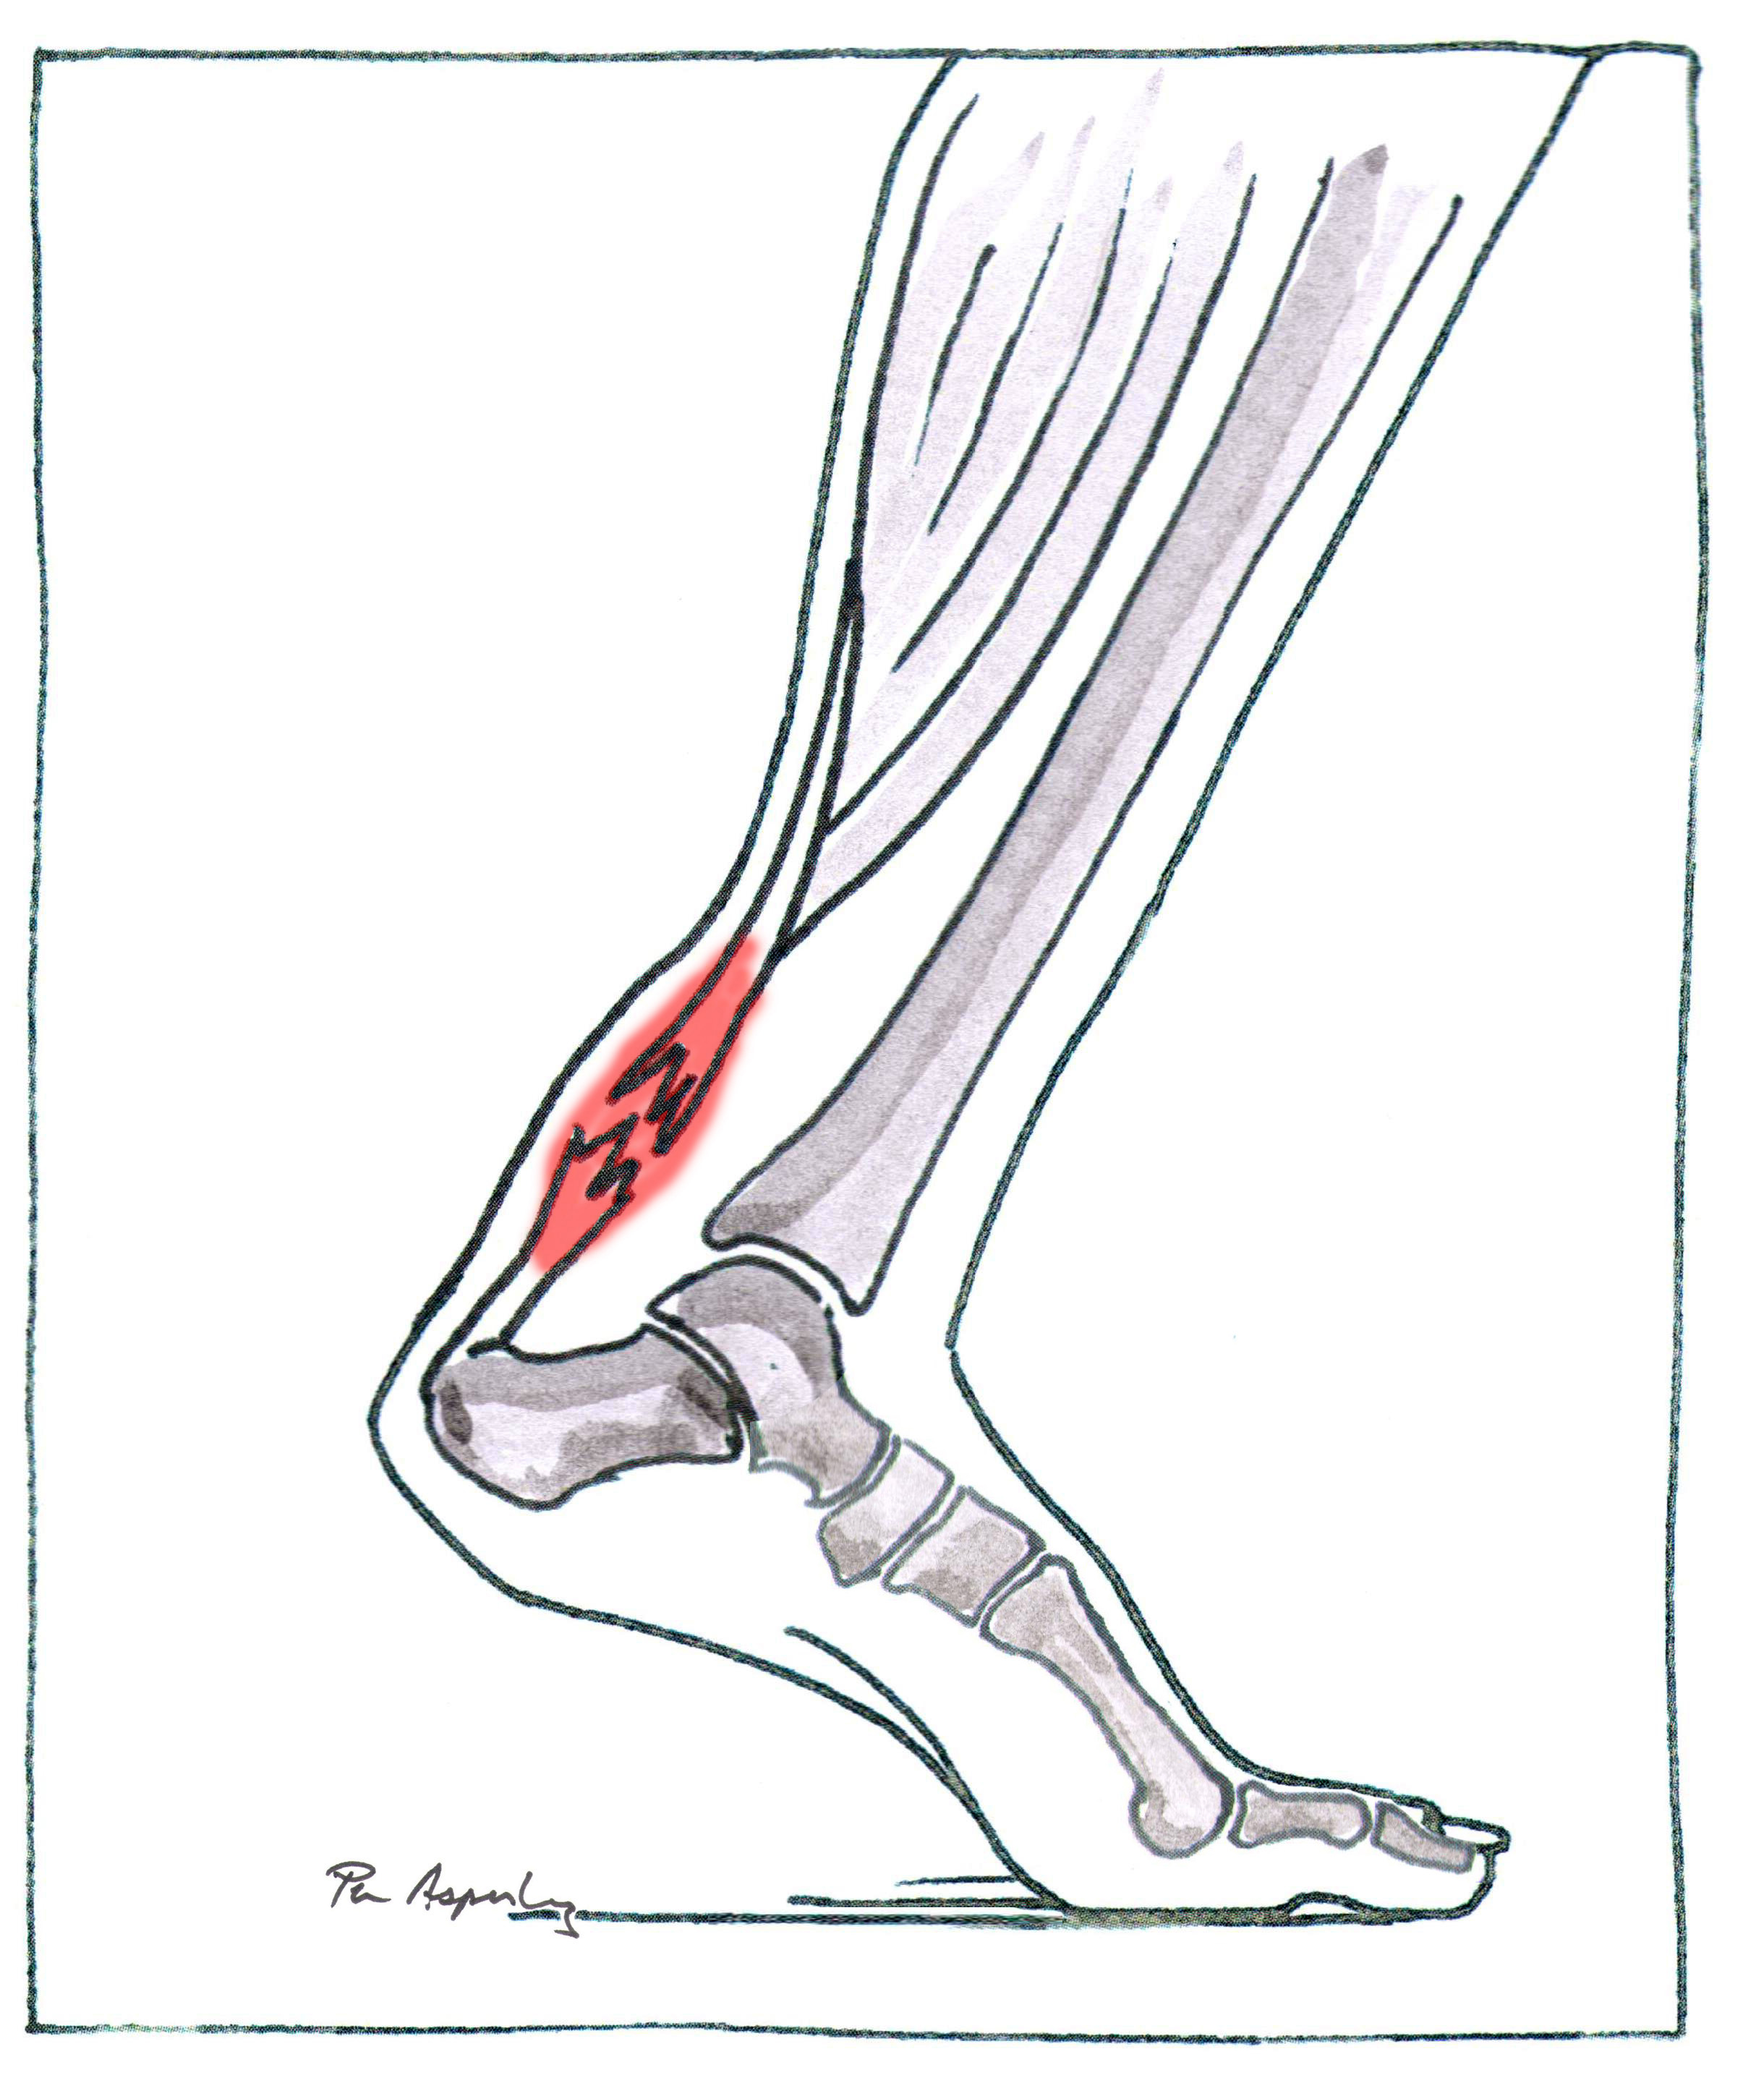 Drawing of a damaged Achilles tendon with inflammation.